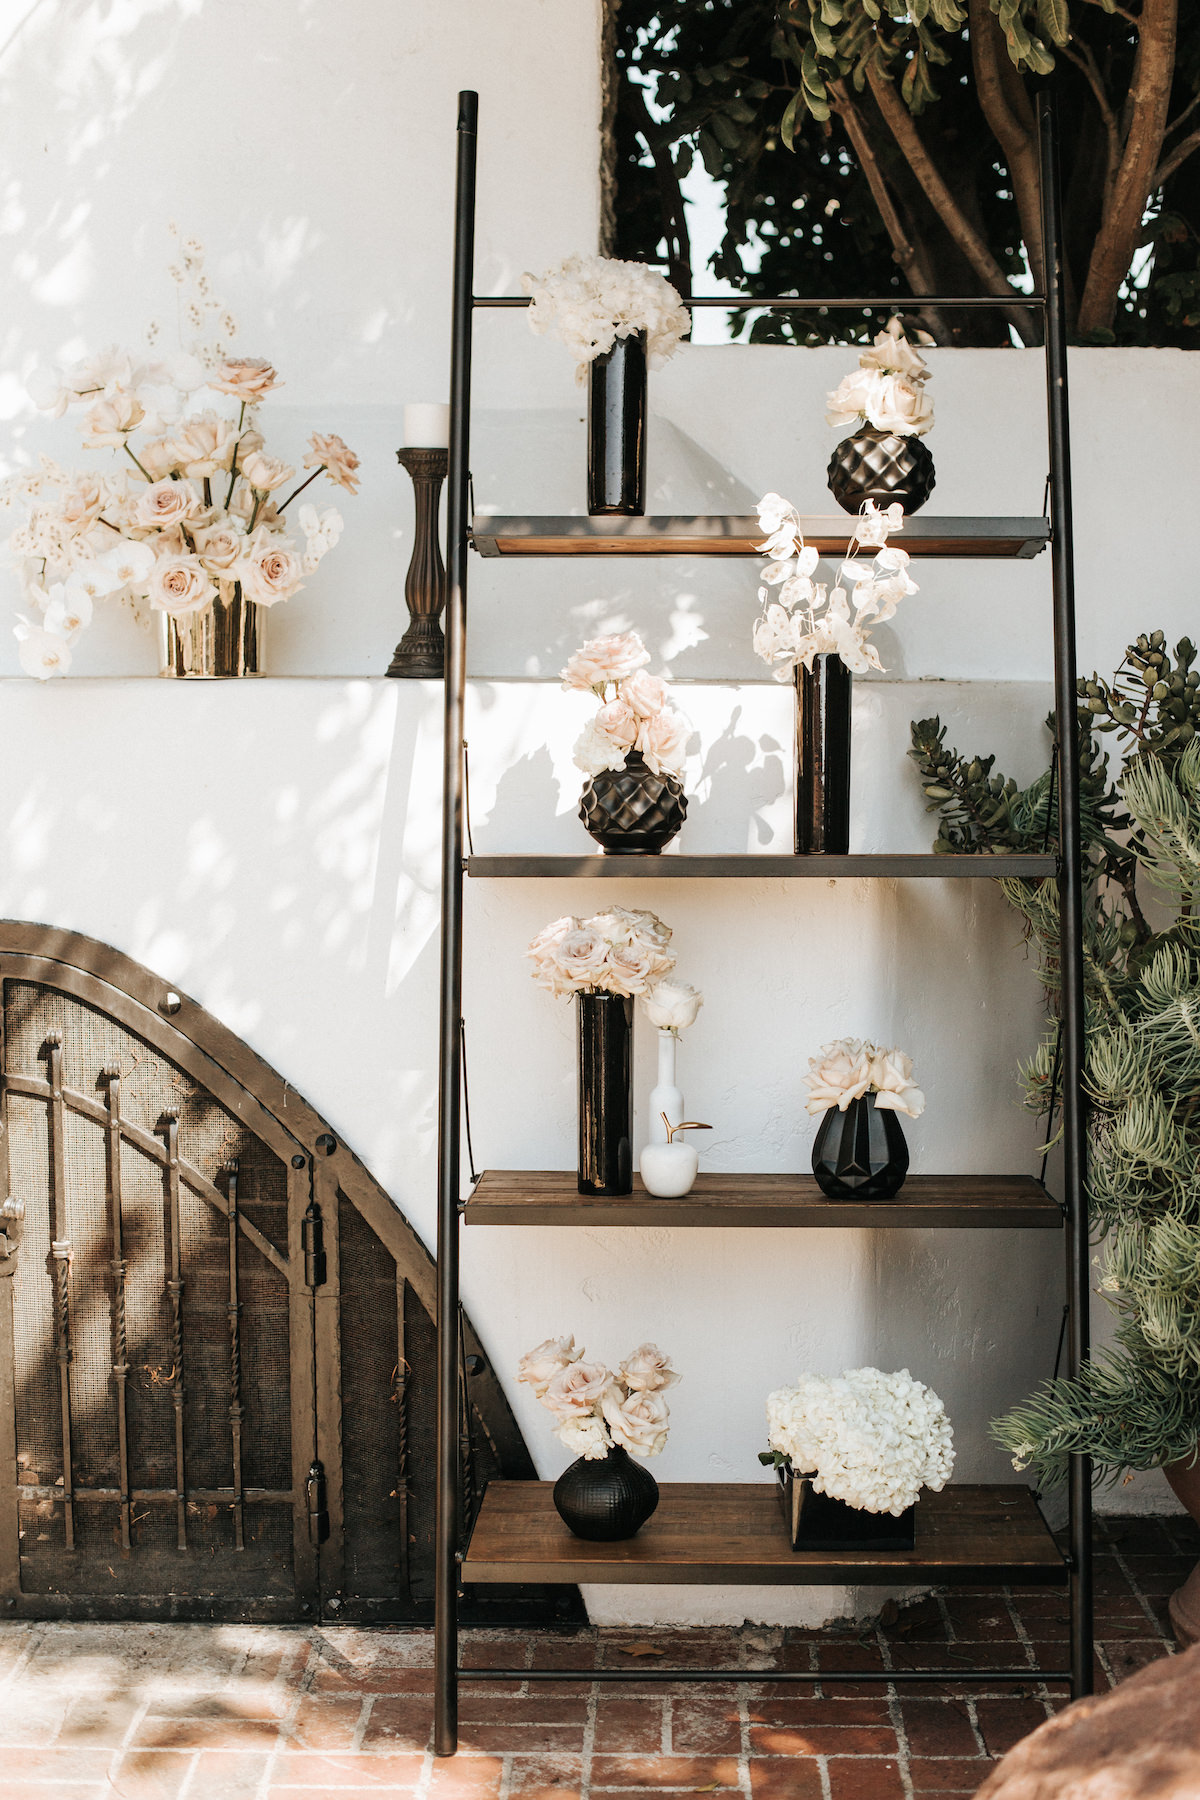 Black and white wedding ceremony flowers and decor - Sydney Bliss Photography